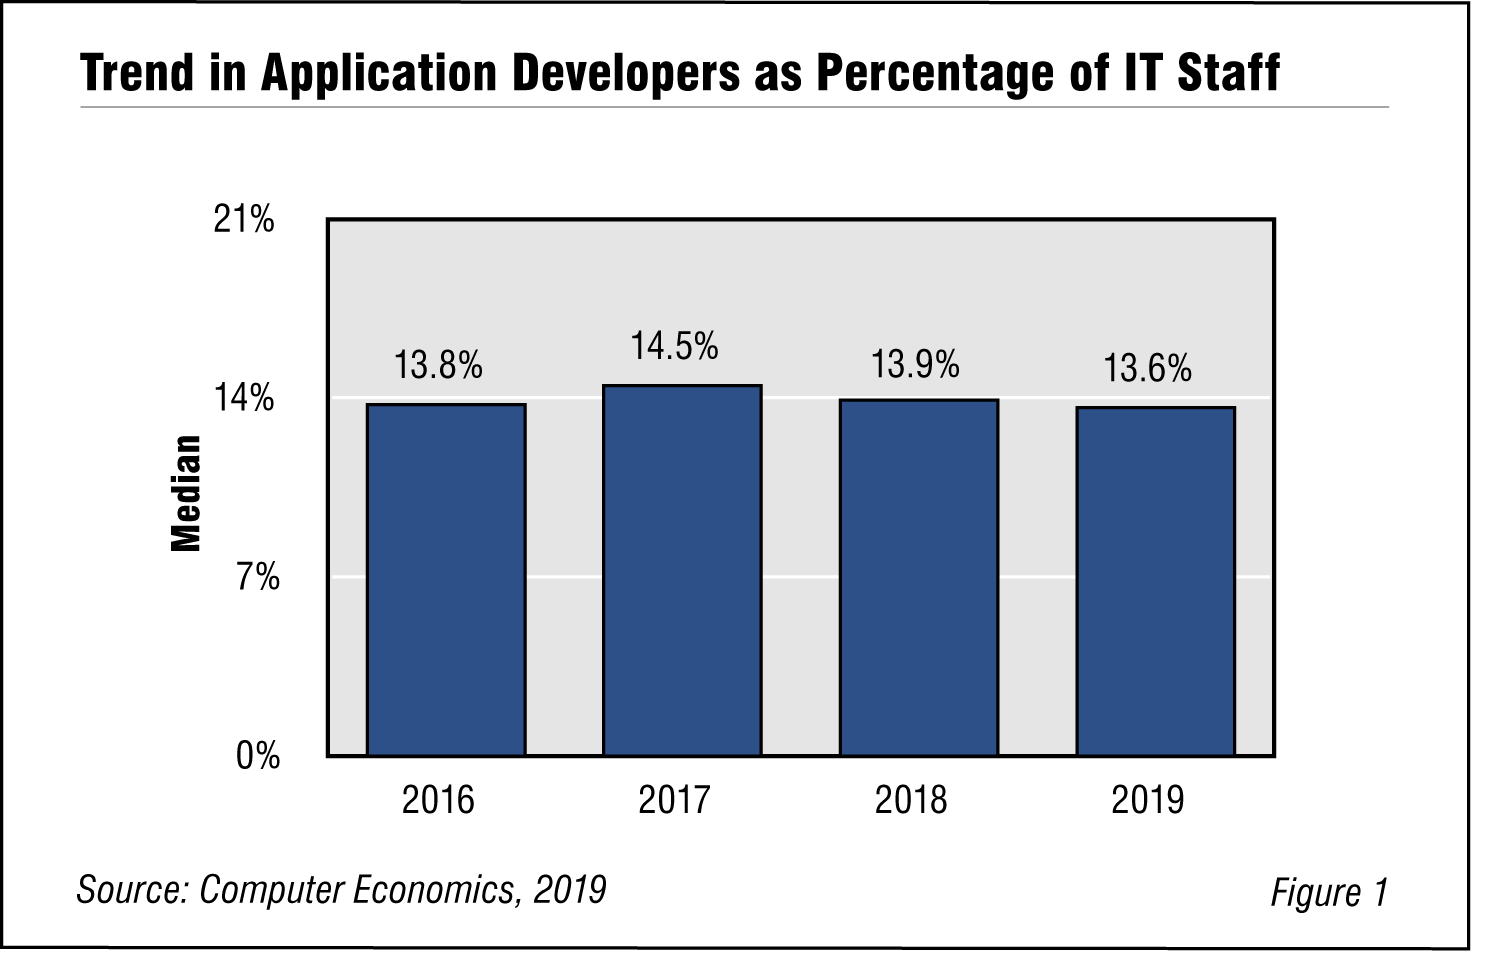 Fig. 1: Trend in Application Developers as Percentage of IT Staff